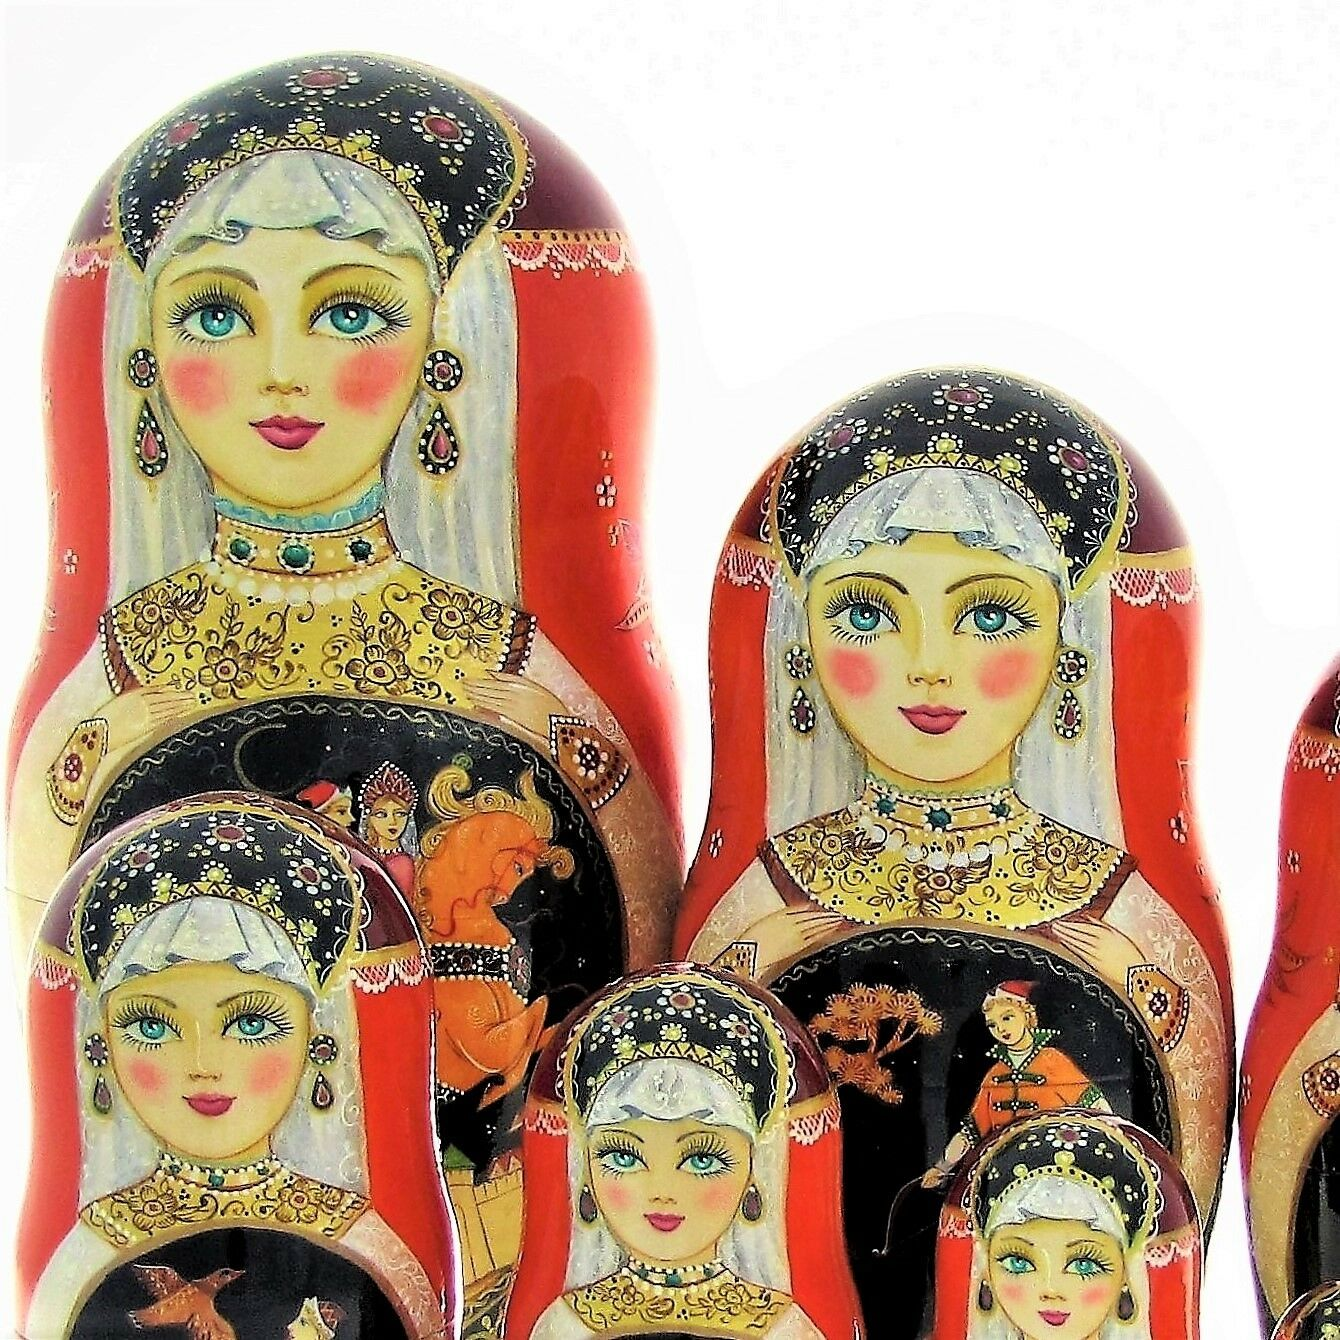 10 Poupées russes H26cm exclusive Palekh peint main signé Matriochka Nested Doll